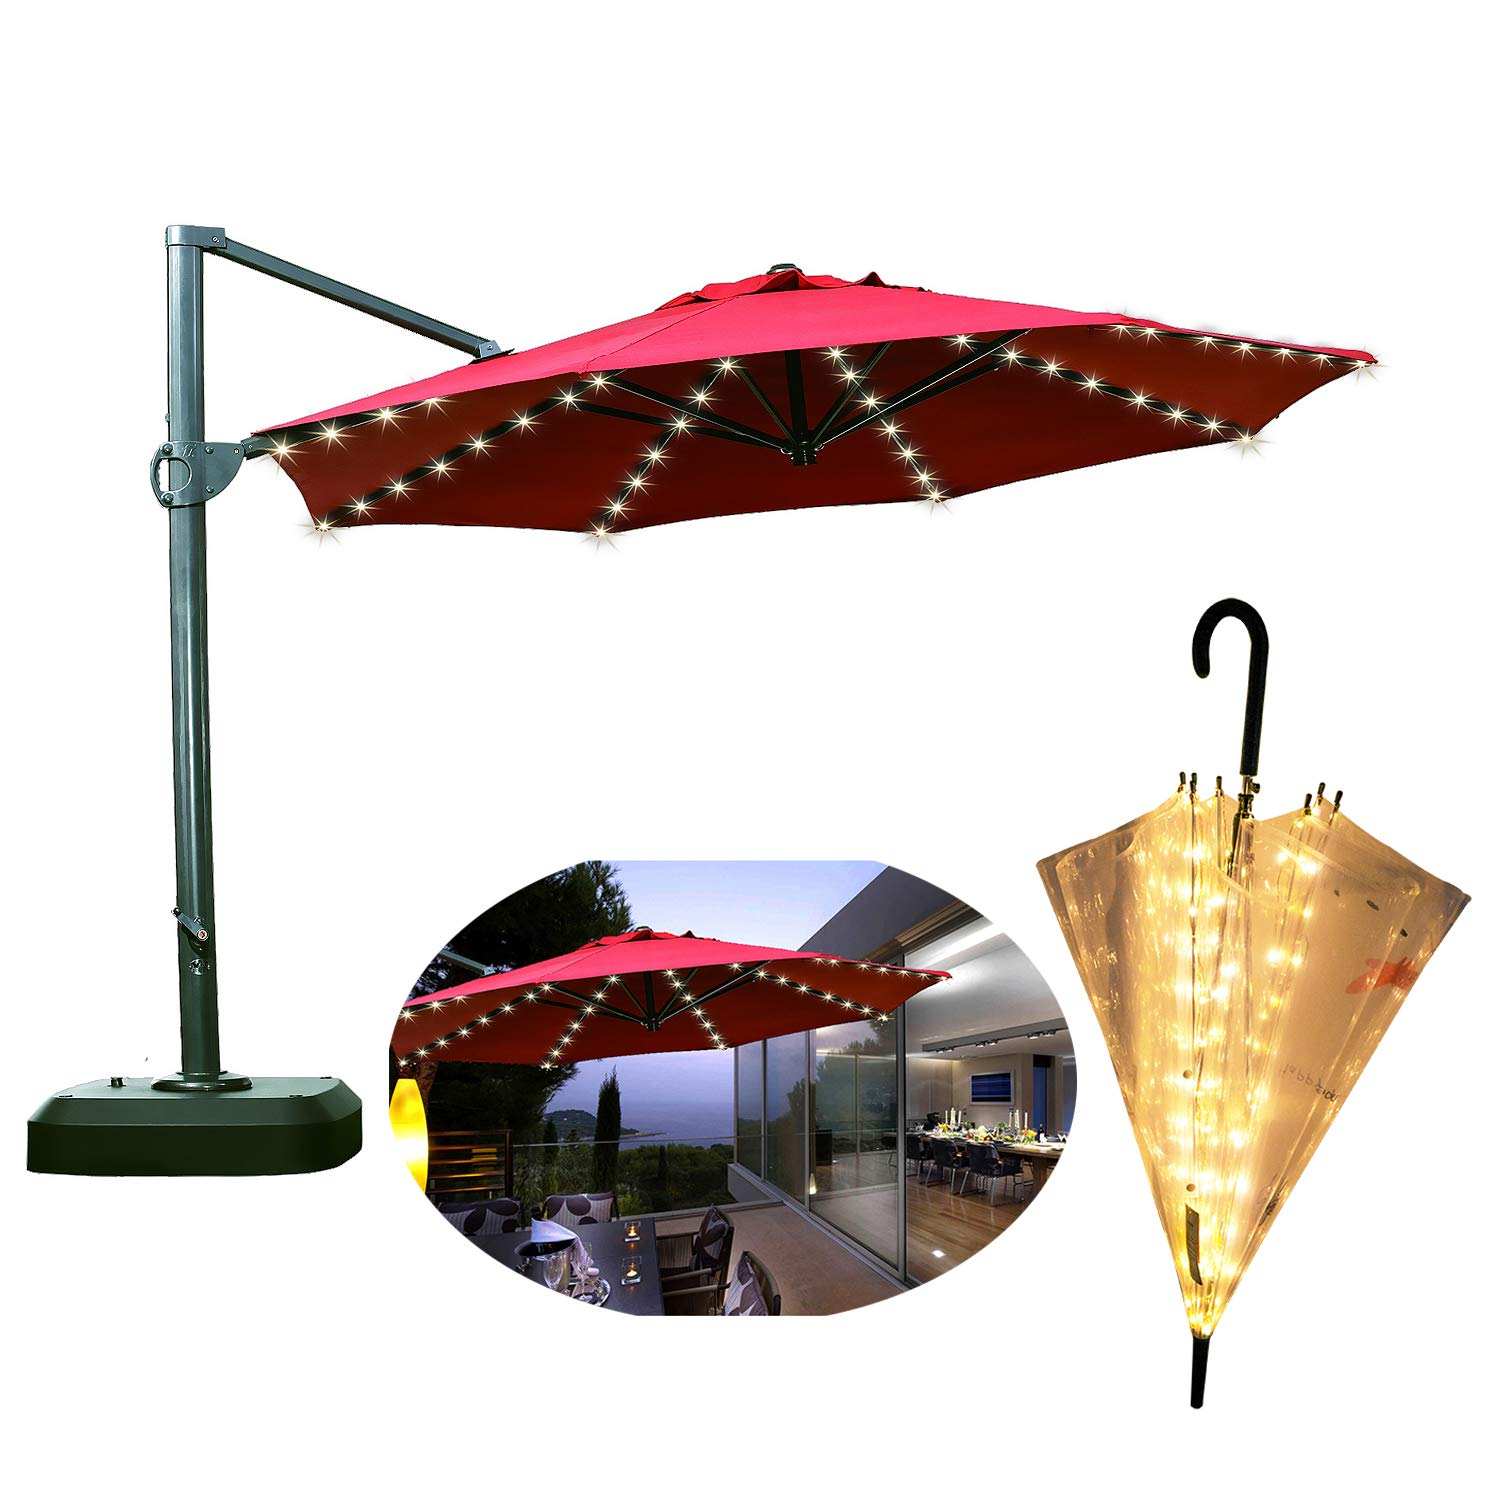 Areskey LED Umbrella Lights,Warm White 8x13LED Starry Lights,Applies to Large Patio Table Umbrella,or Portable Umbrella,Bistro Pergola,Deckyard,Tents,Cafe,Garden,Travel,Beach,Party Decor (only Light)